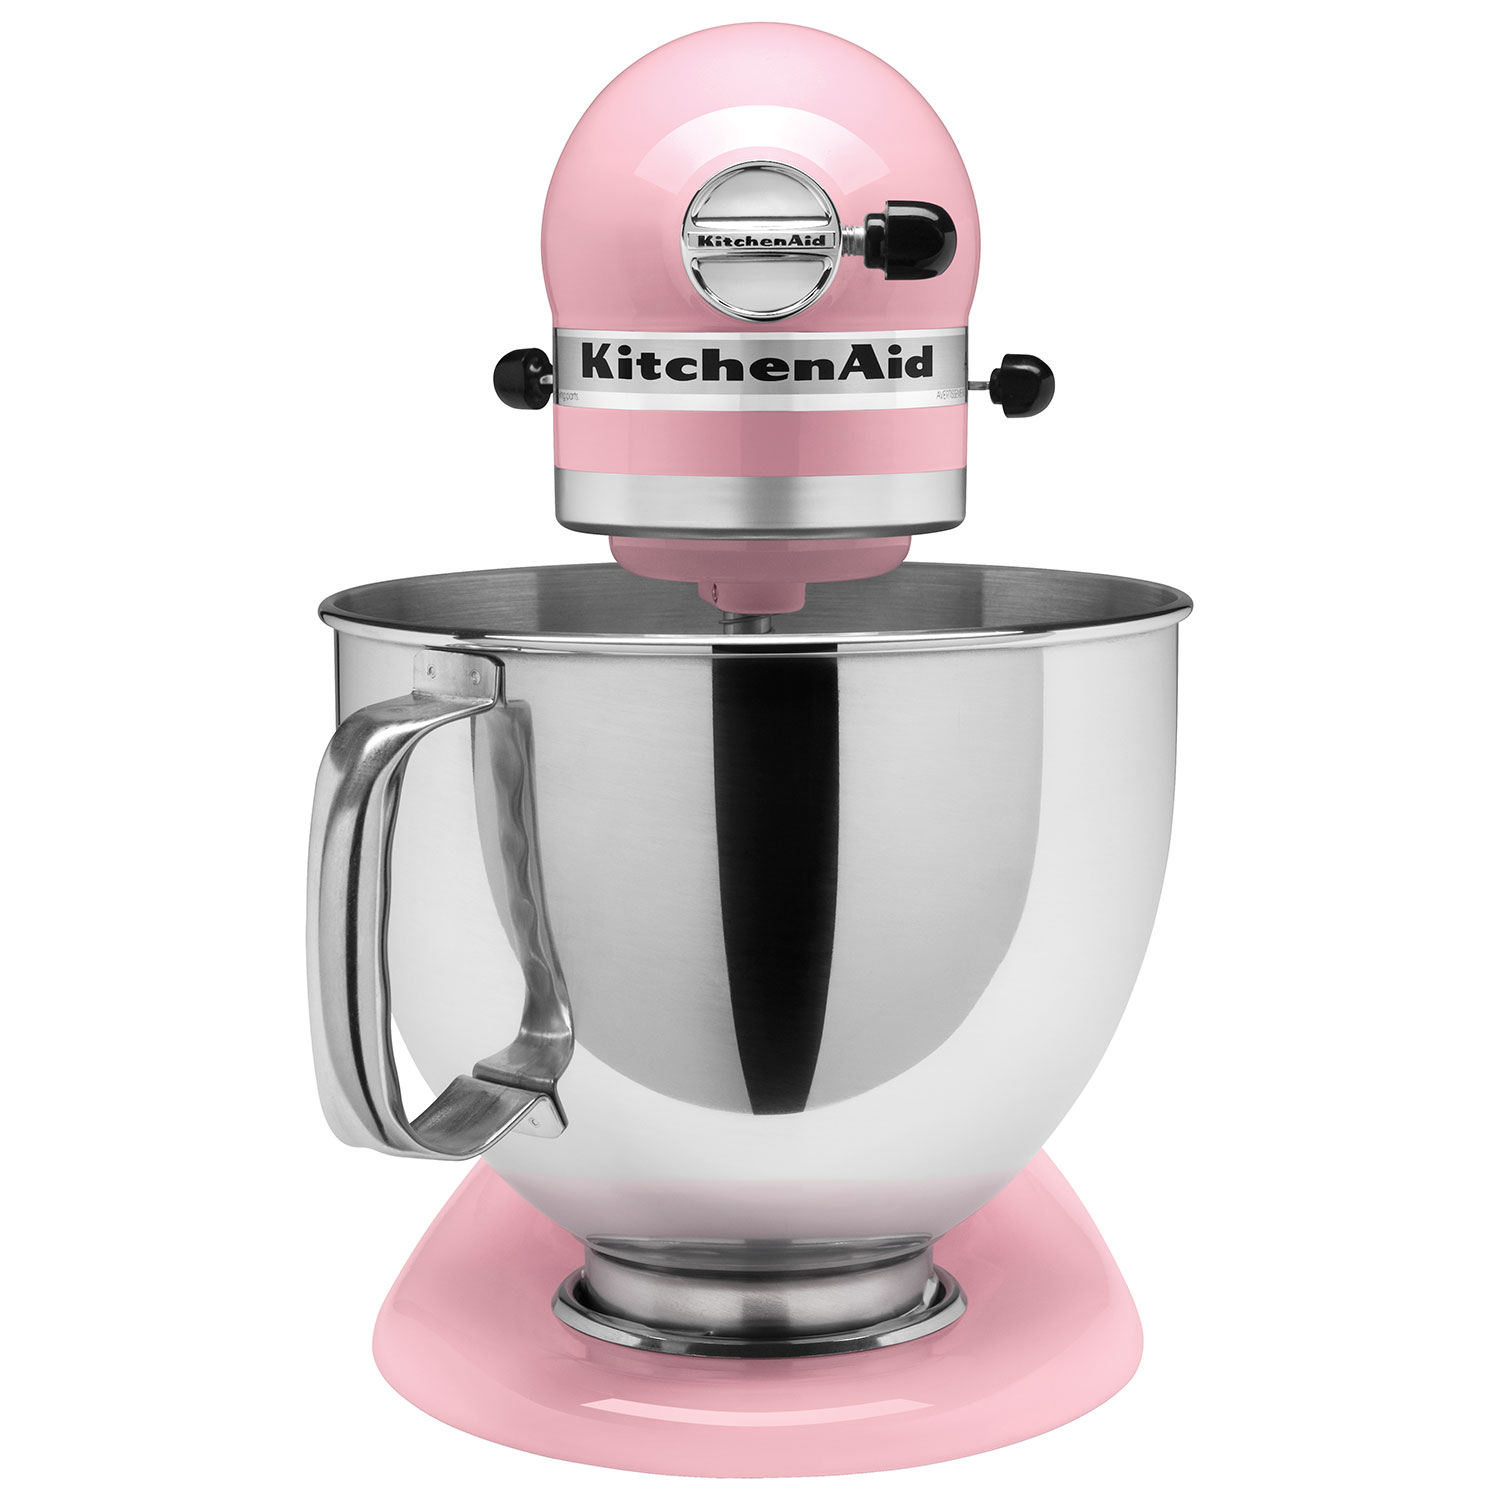 Kitchenaid pink food processor - Kitchenaid Artisan Stand Mixer 4 73l 325 Watt Pink Stand Mixers Best Buy Canada